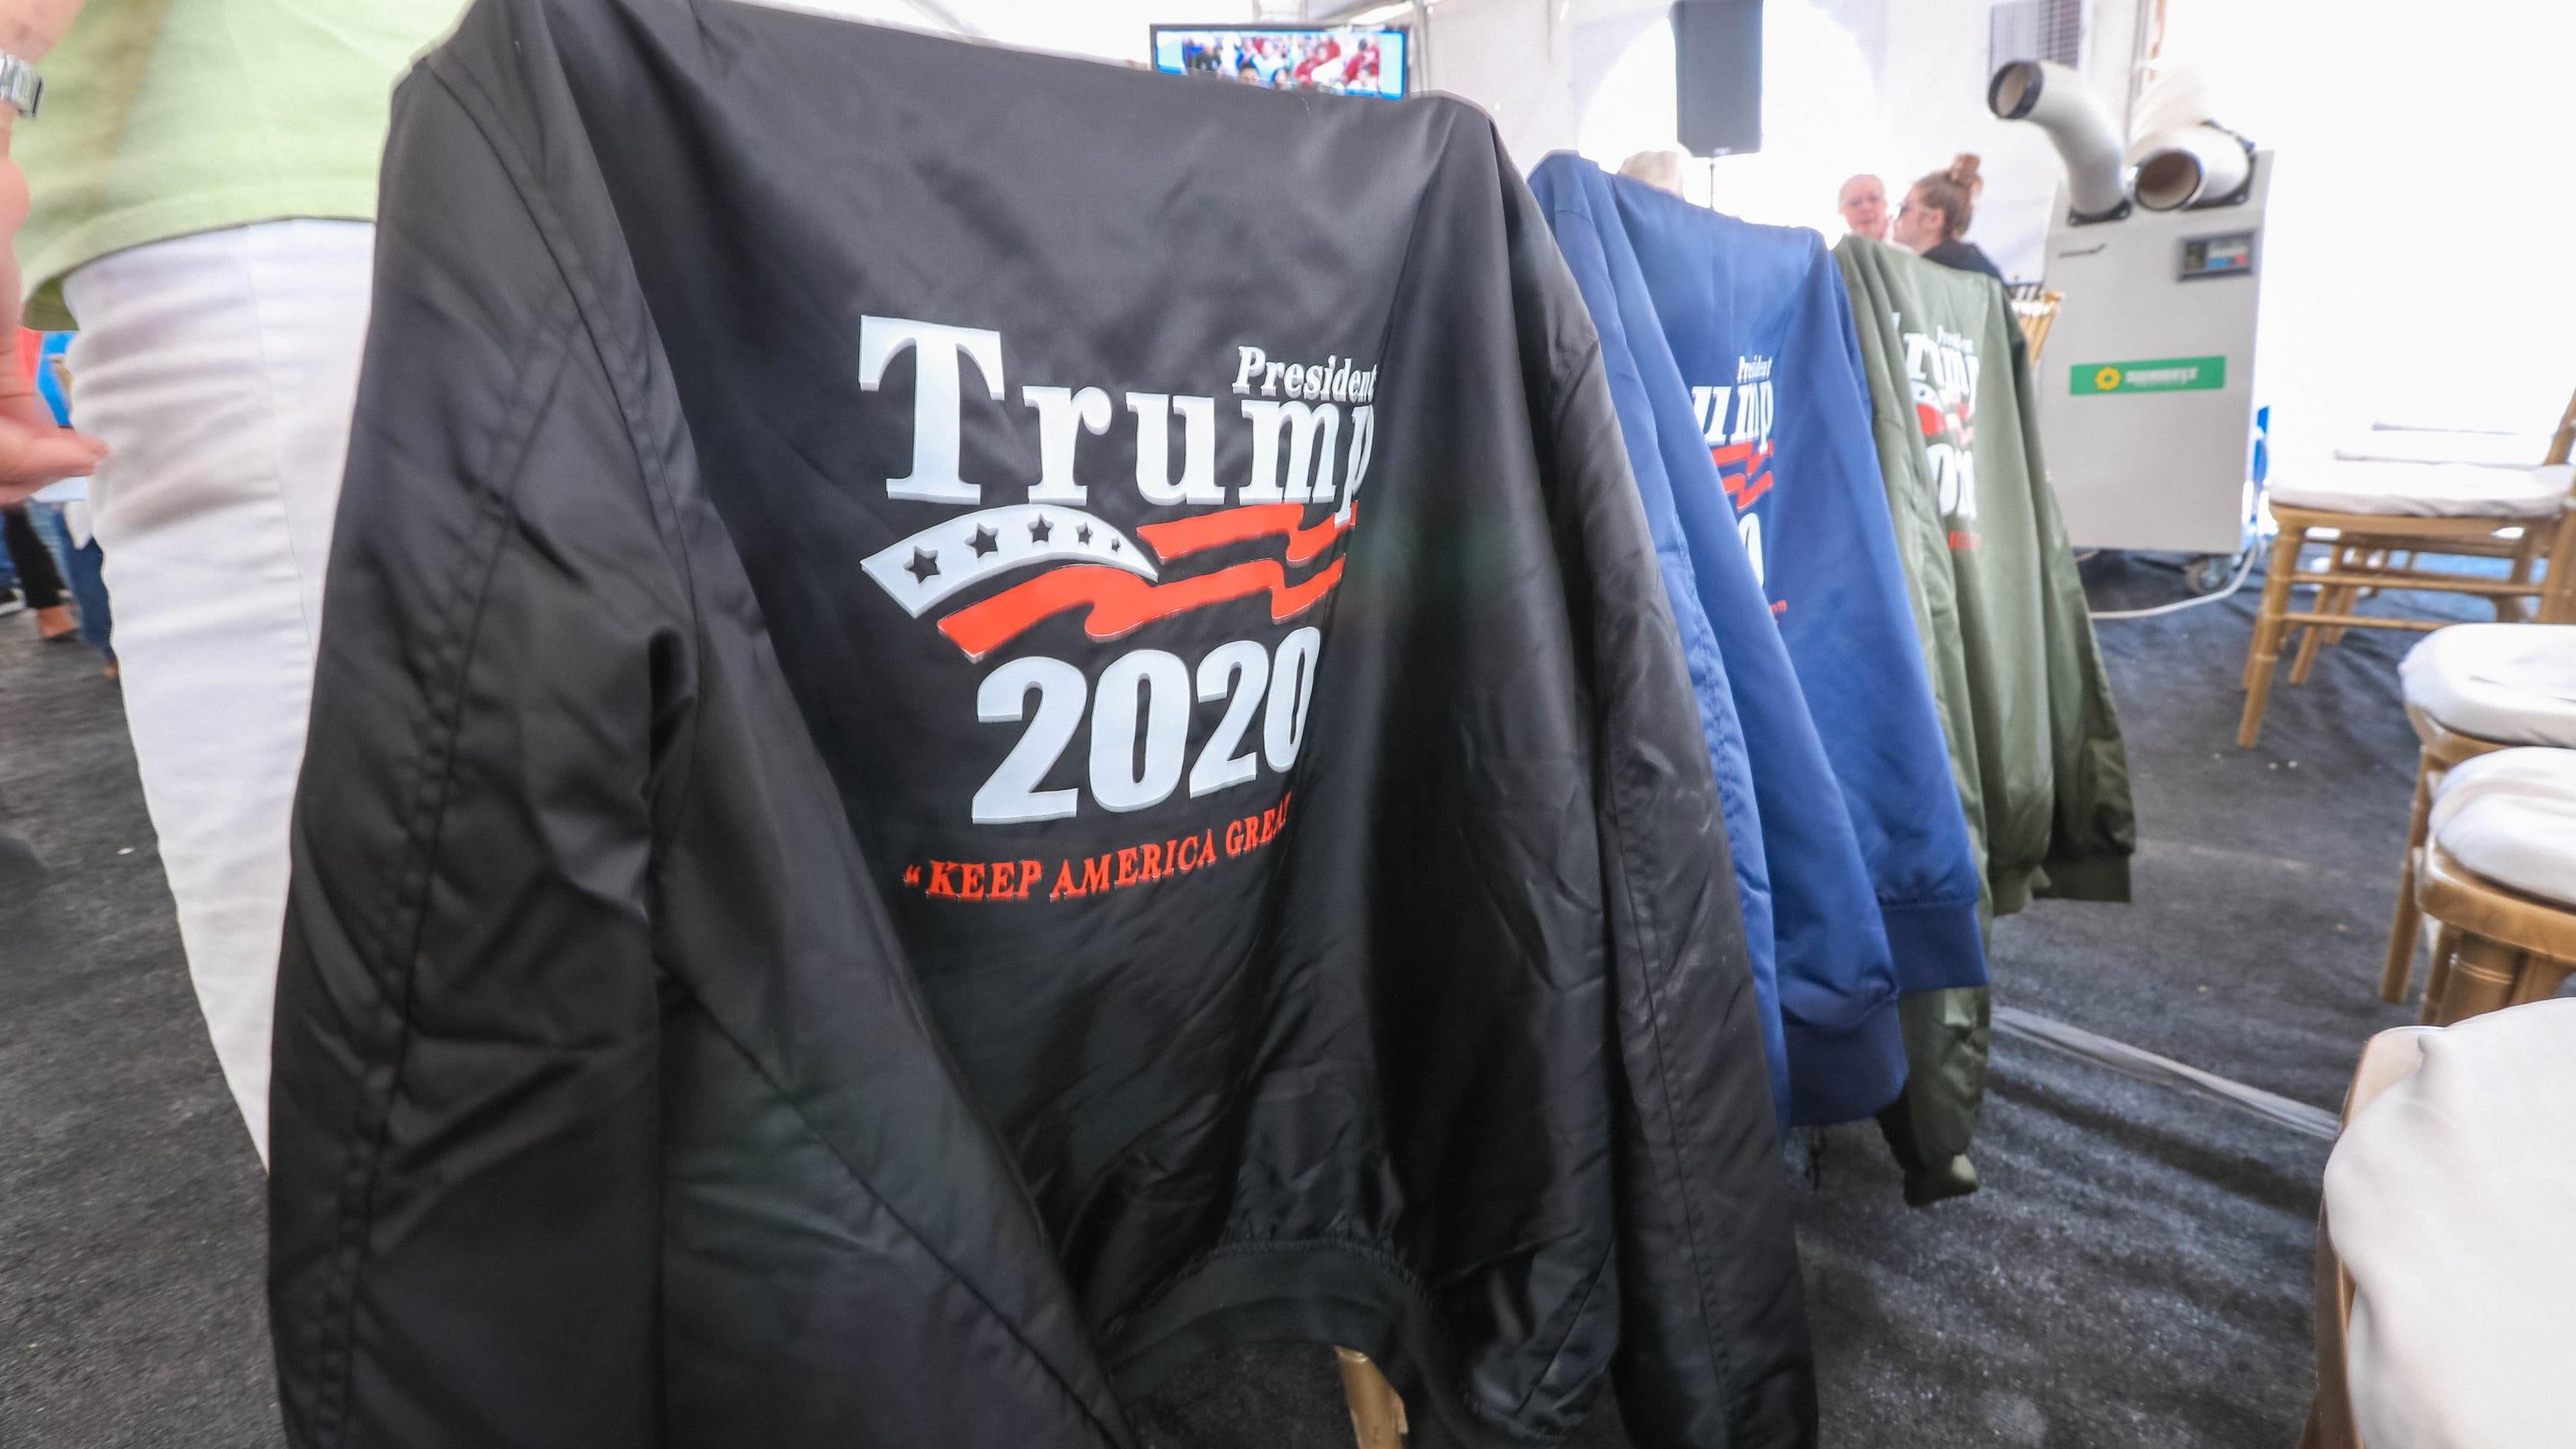 New Mexico Elections 2020.Trump Gop Look To Flip New Mexico In 2020